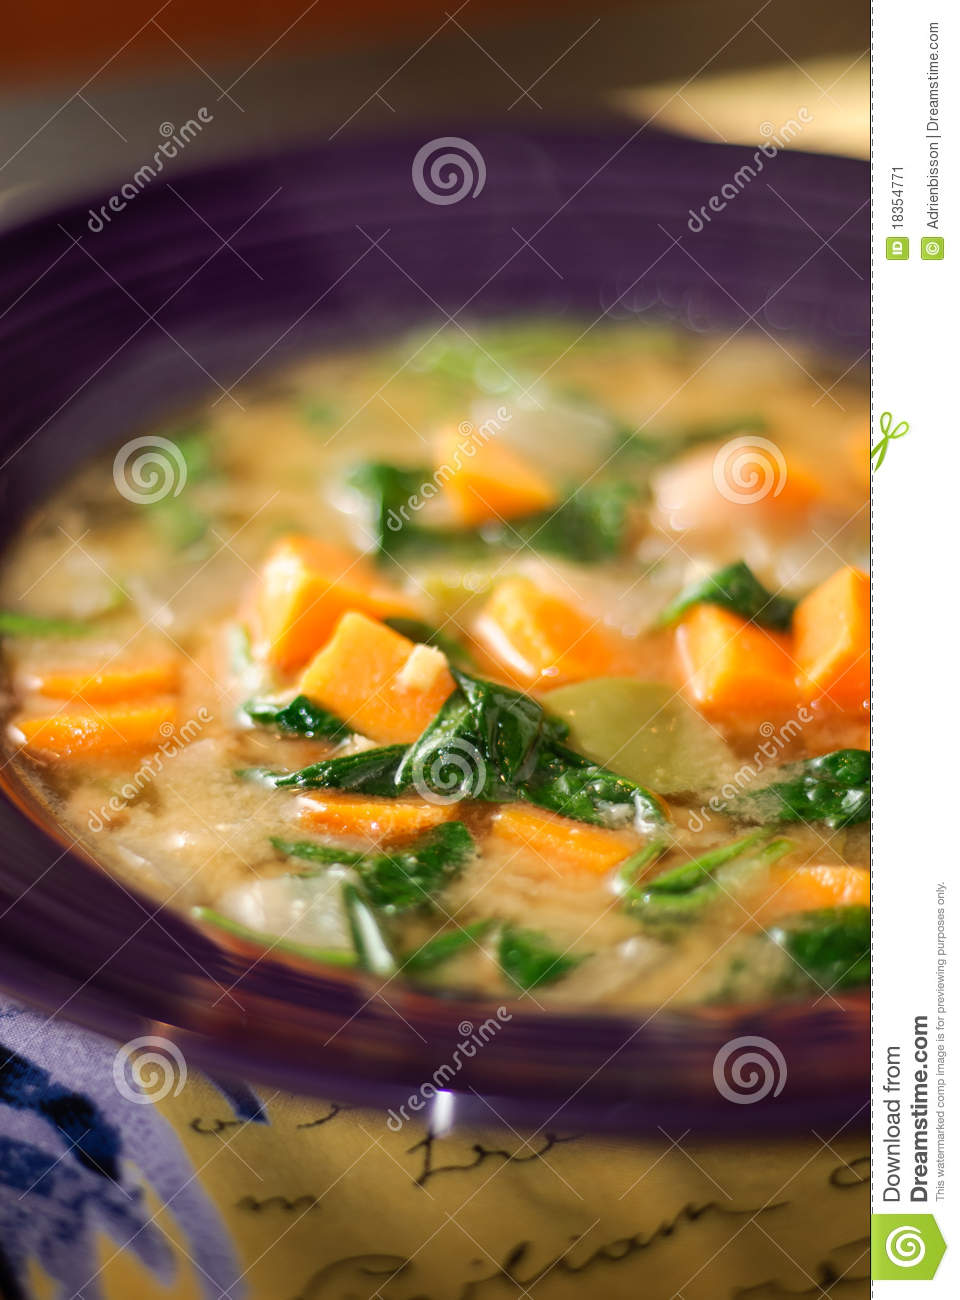 Senegalese Peanut Stew With Spinach & Sweet Potato Stock Image - Image ...